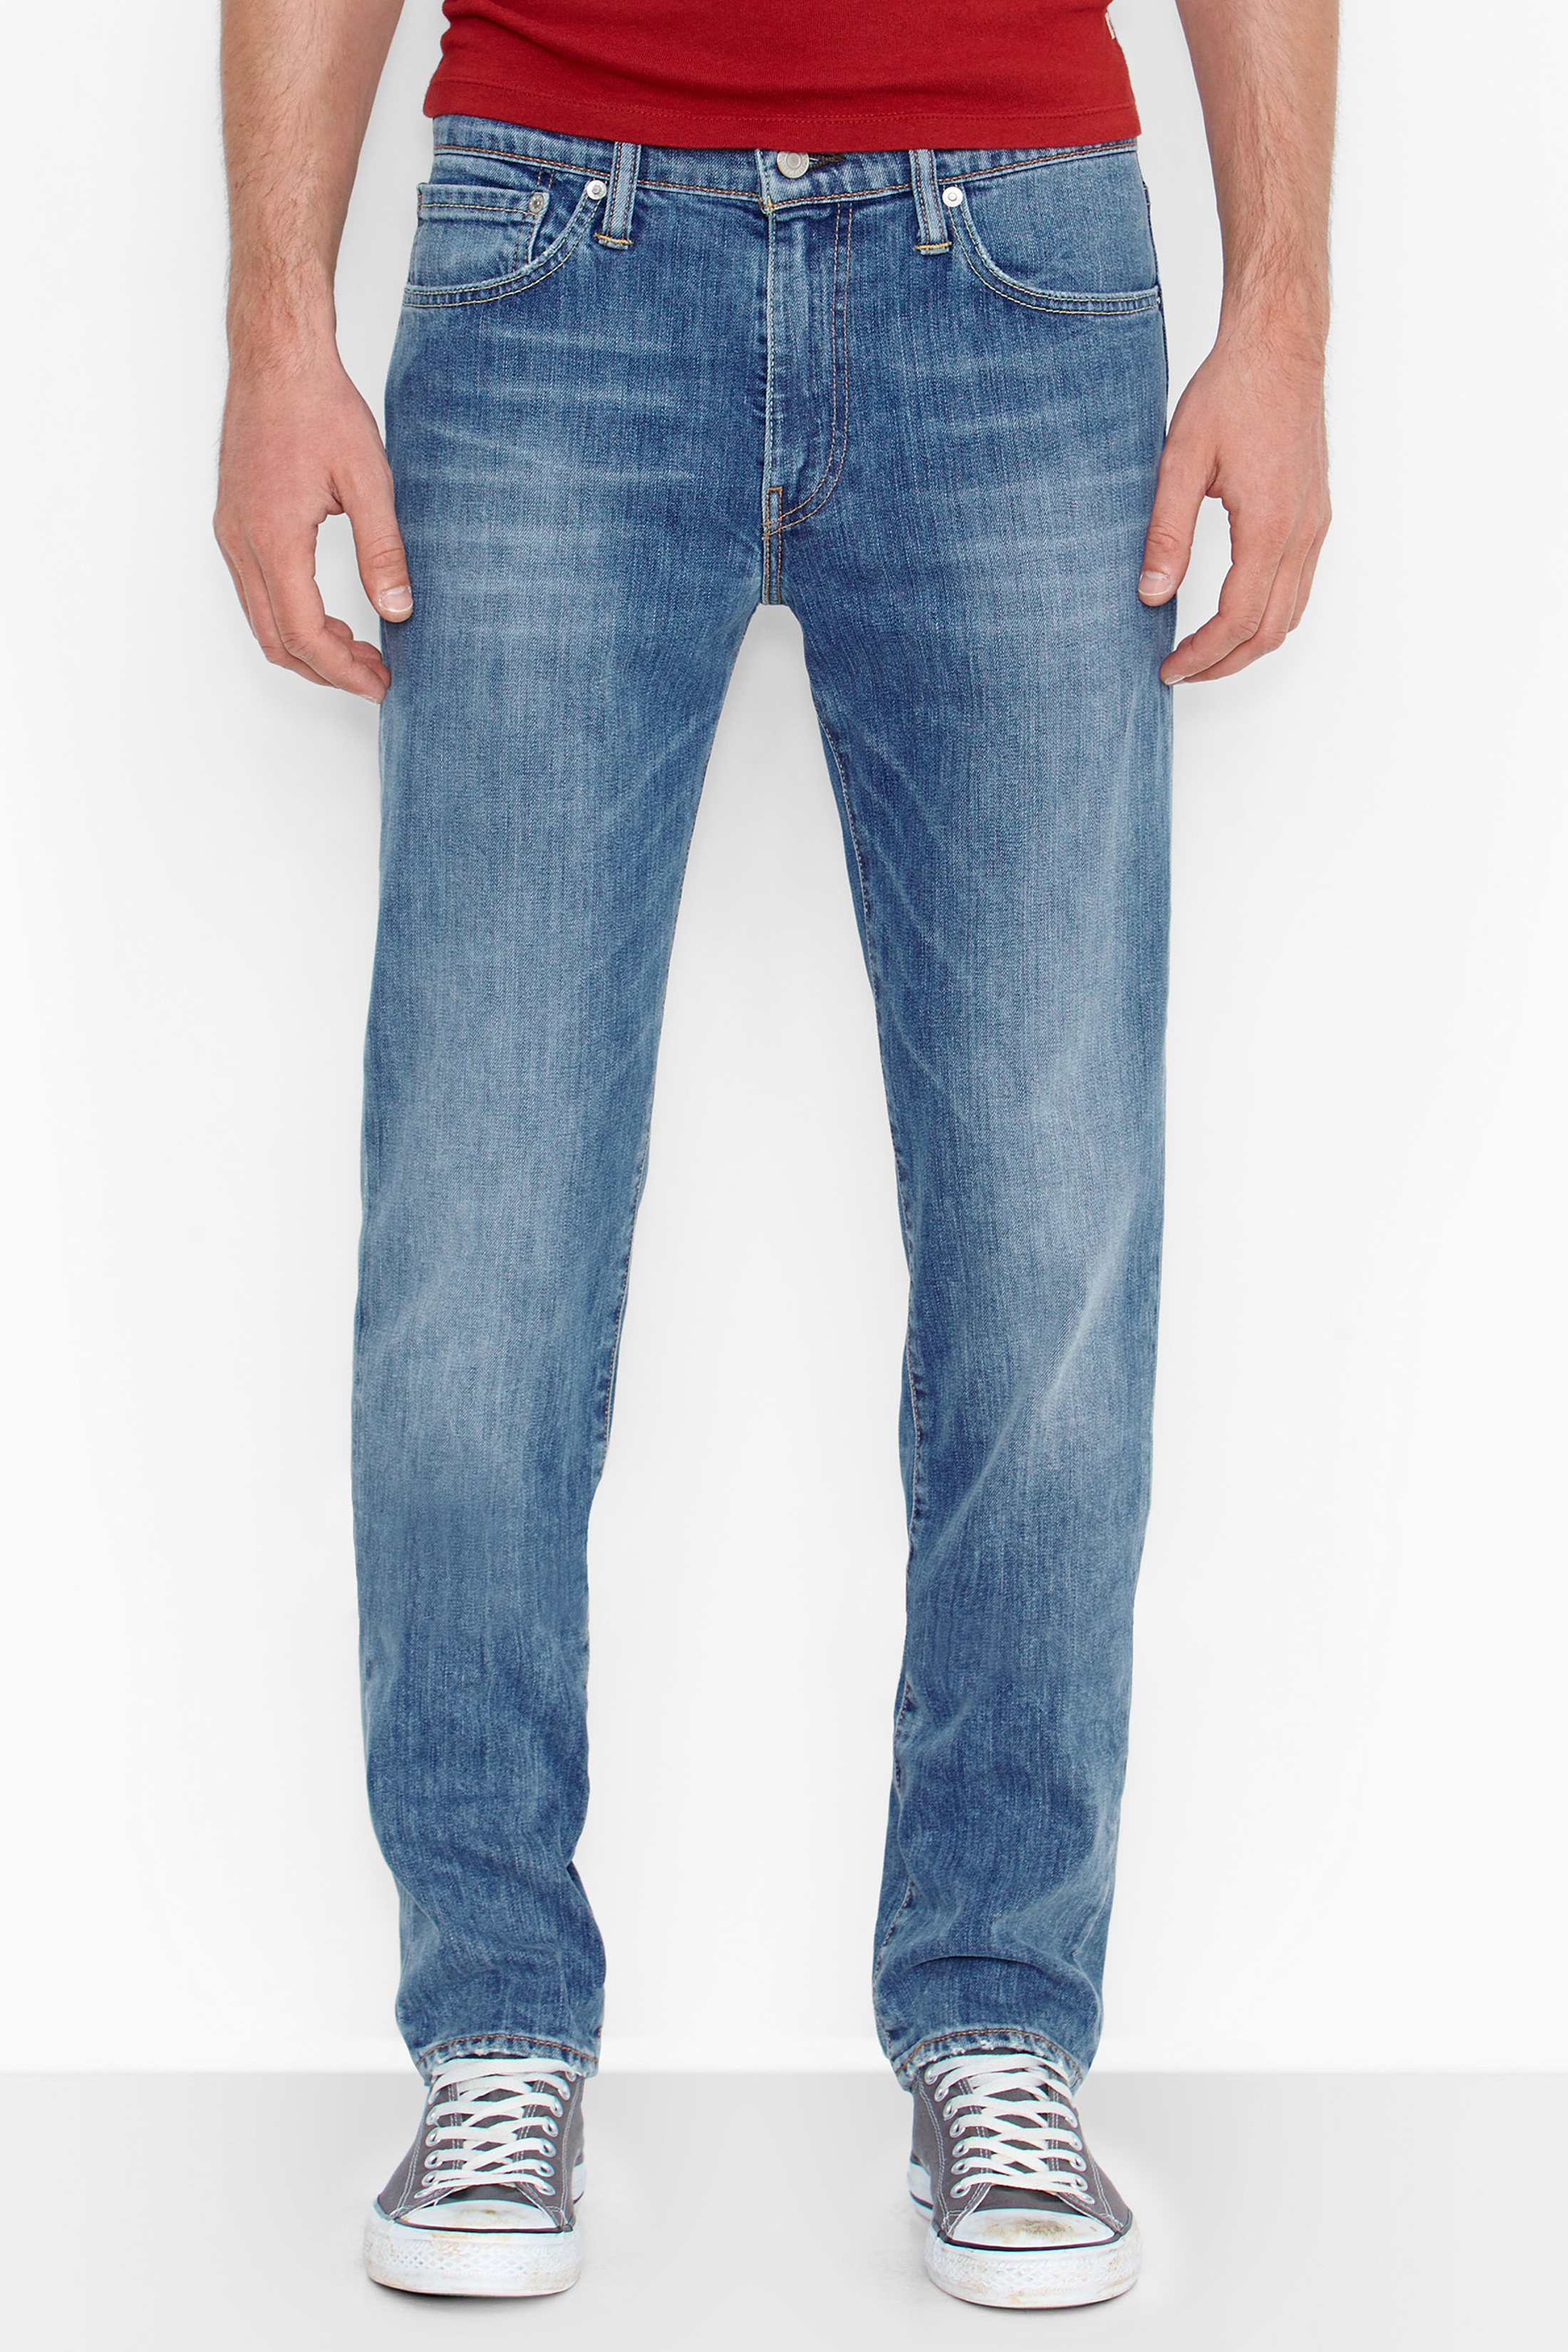 Levi's 511 Jeans Slim Fit Light Denim 1096 foto 4